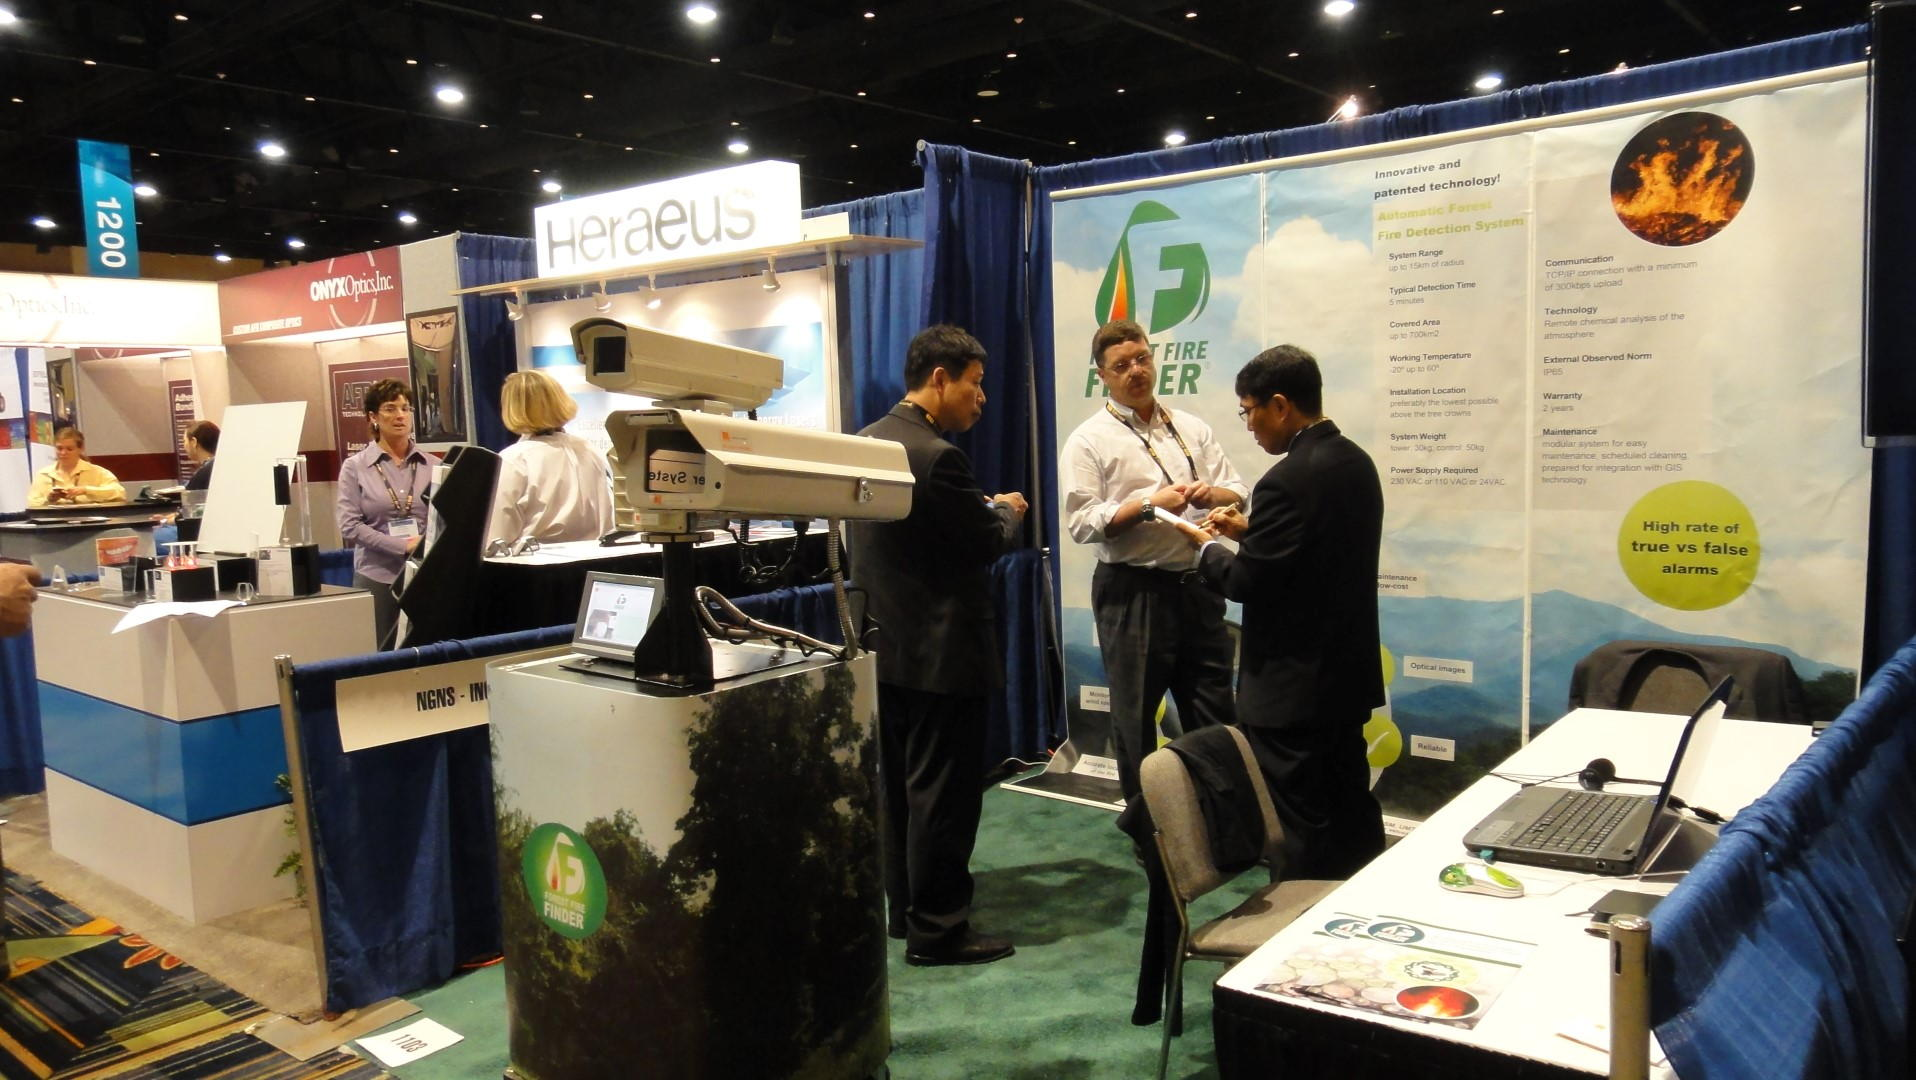 NGNS - Ingenious Solutions at Security Fair, Orlando, USA